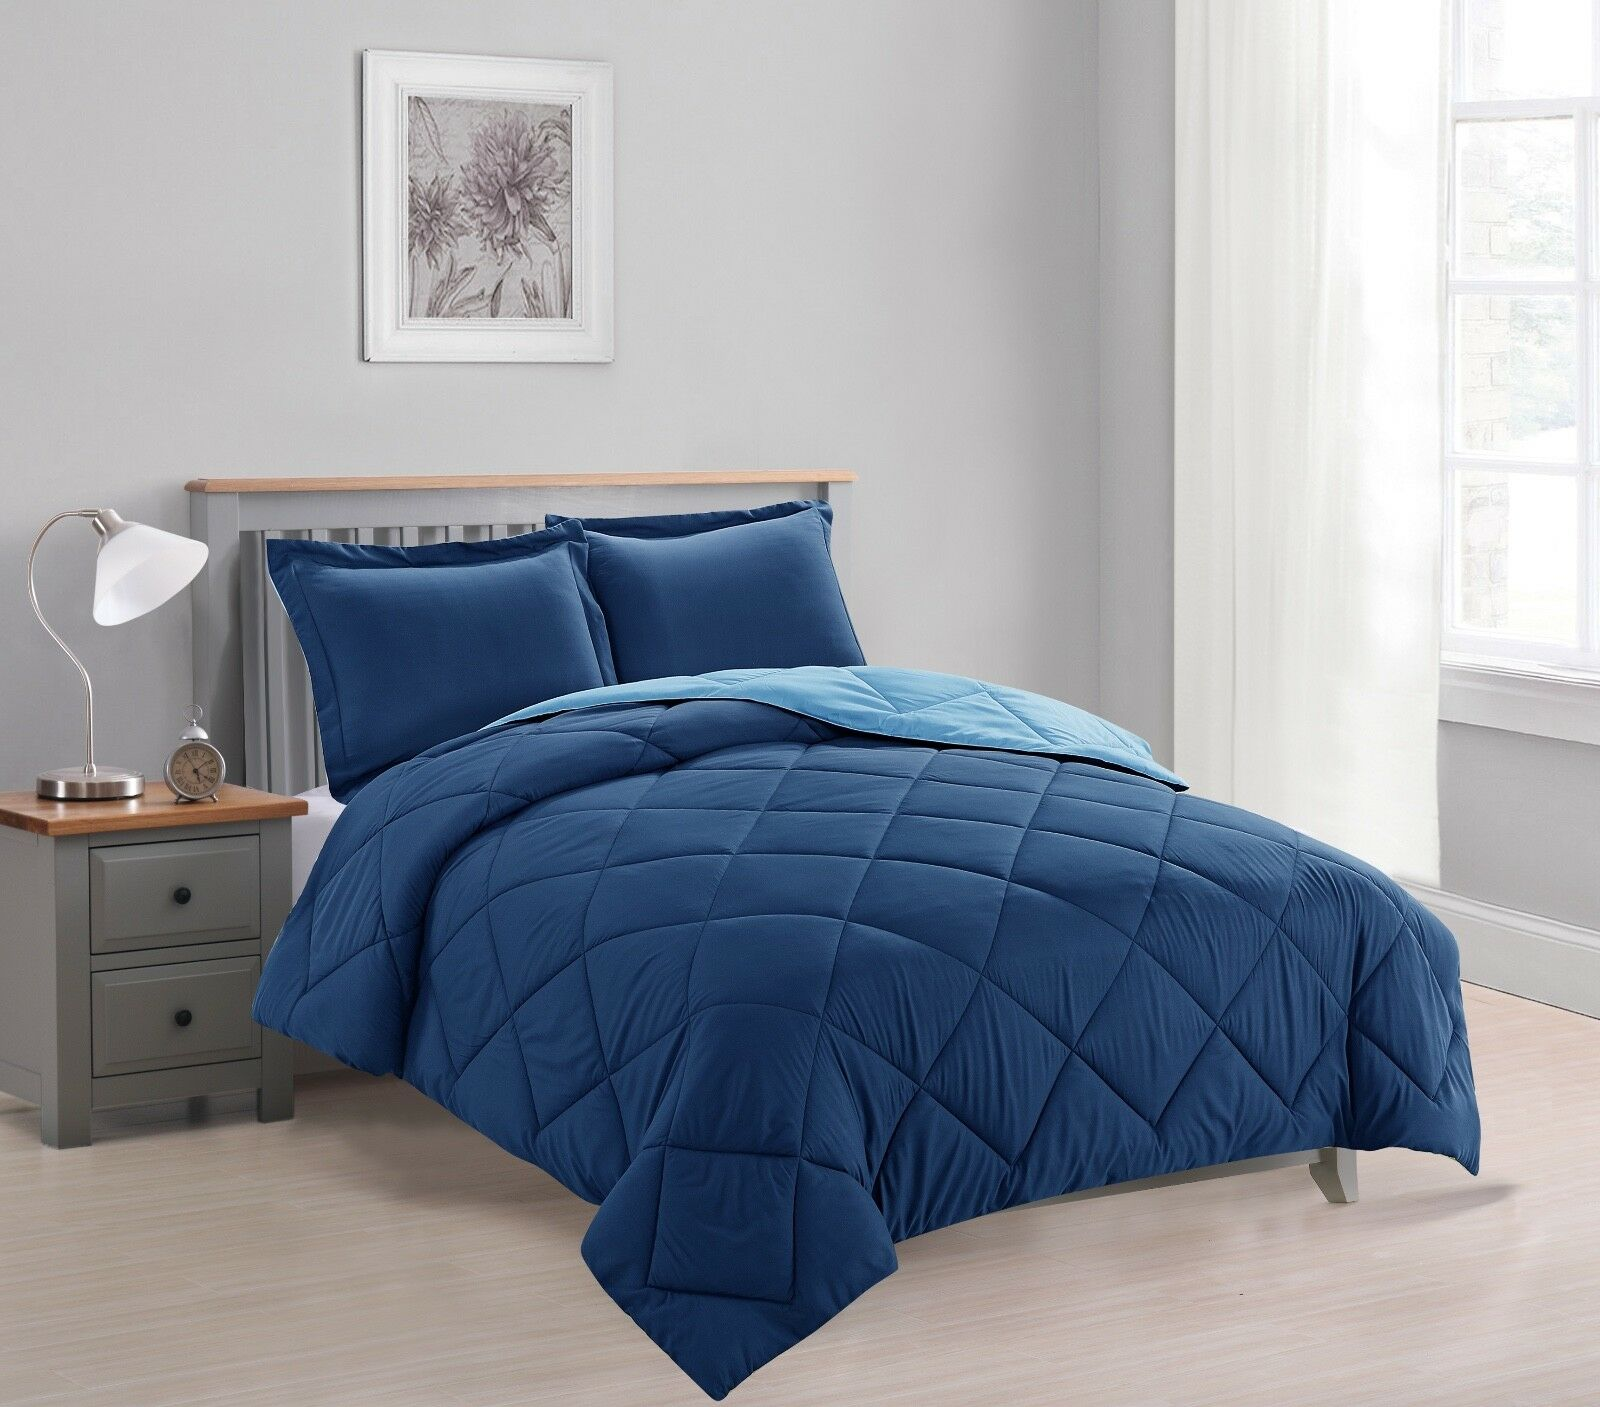 Dayton 3-Piece Reversible Down Alternative Solid Comforter Set - Navy & Light Blue